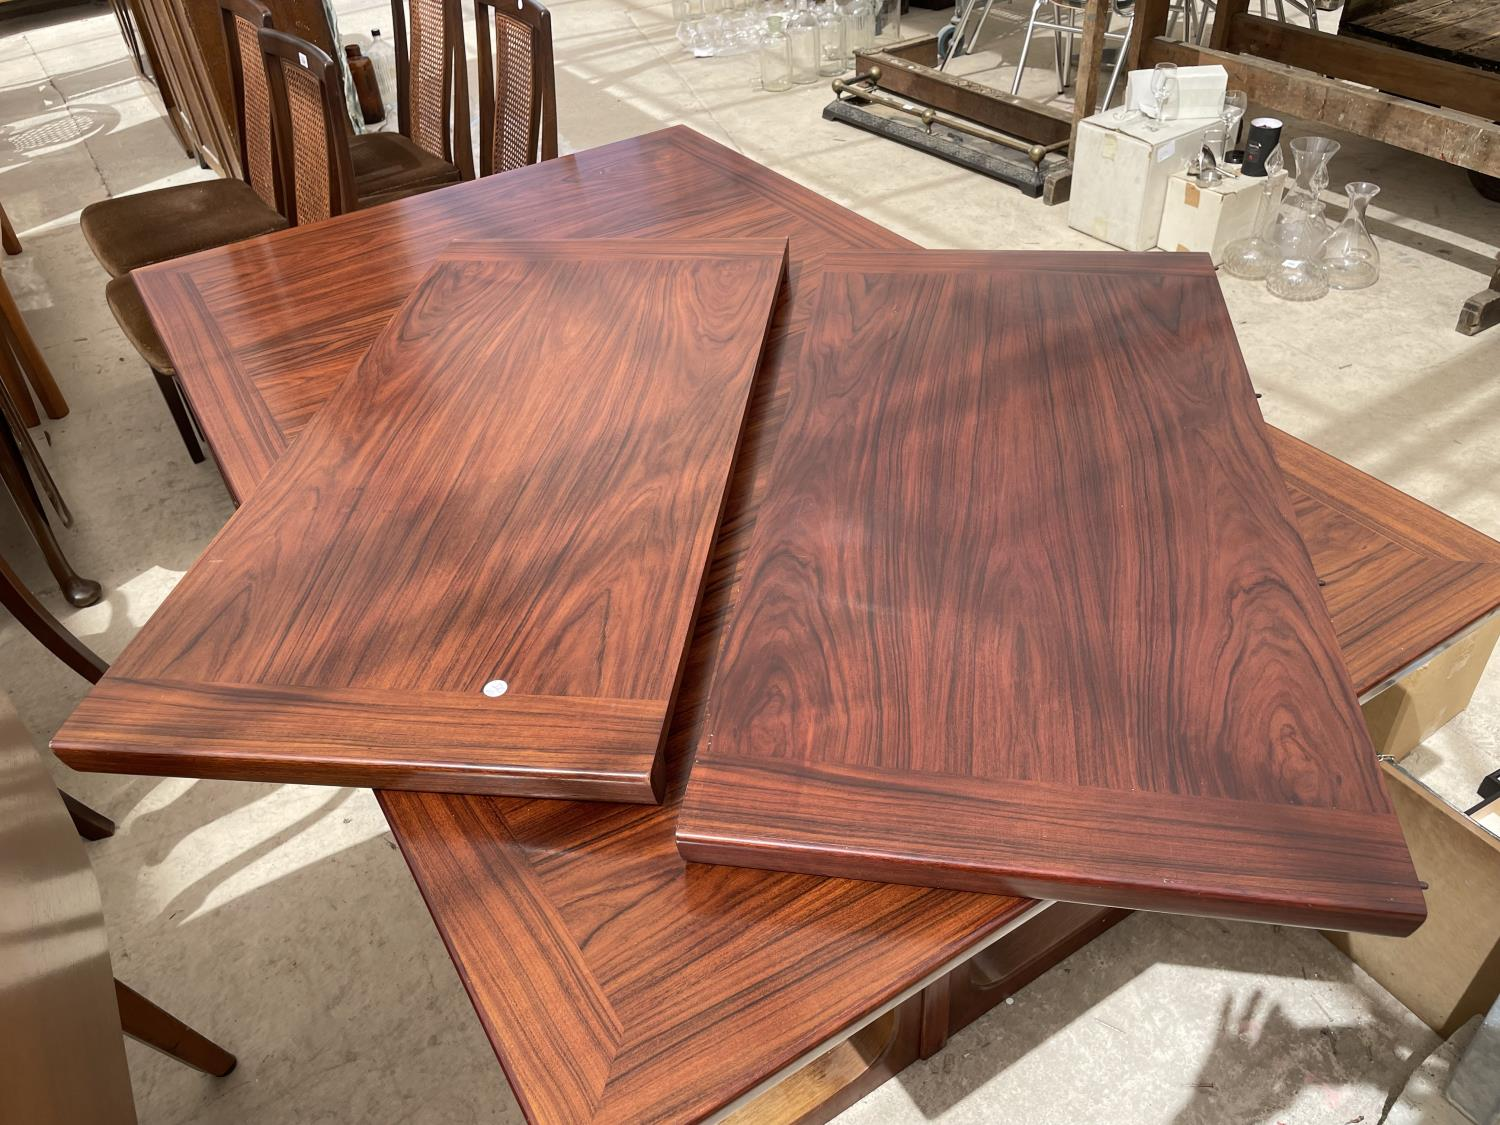 A RETRO EXTENDING HARDWOOD DINING TABLE WITH TWO EXTRA LEAVES - Image 6 of 6